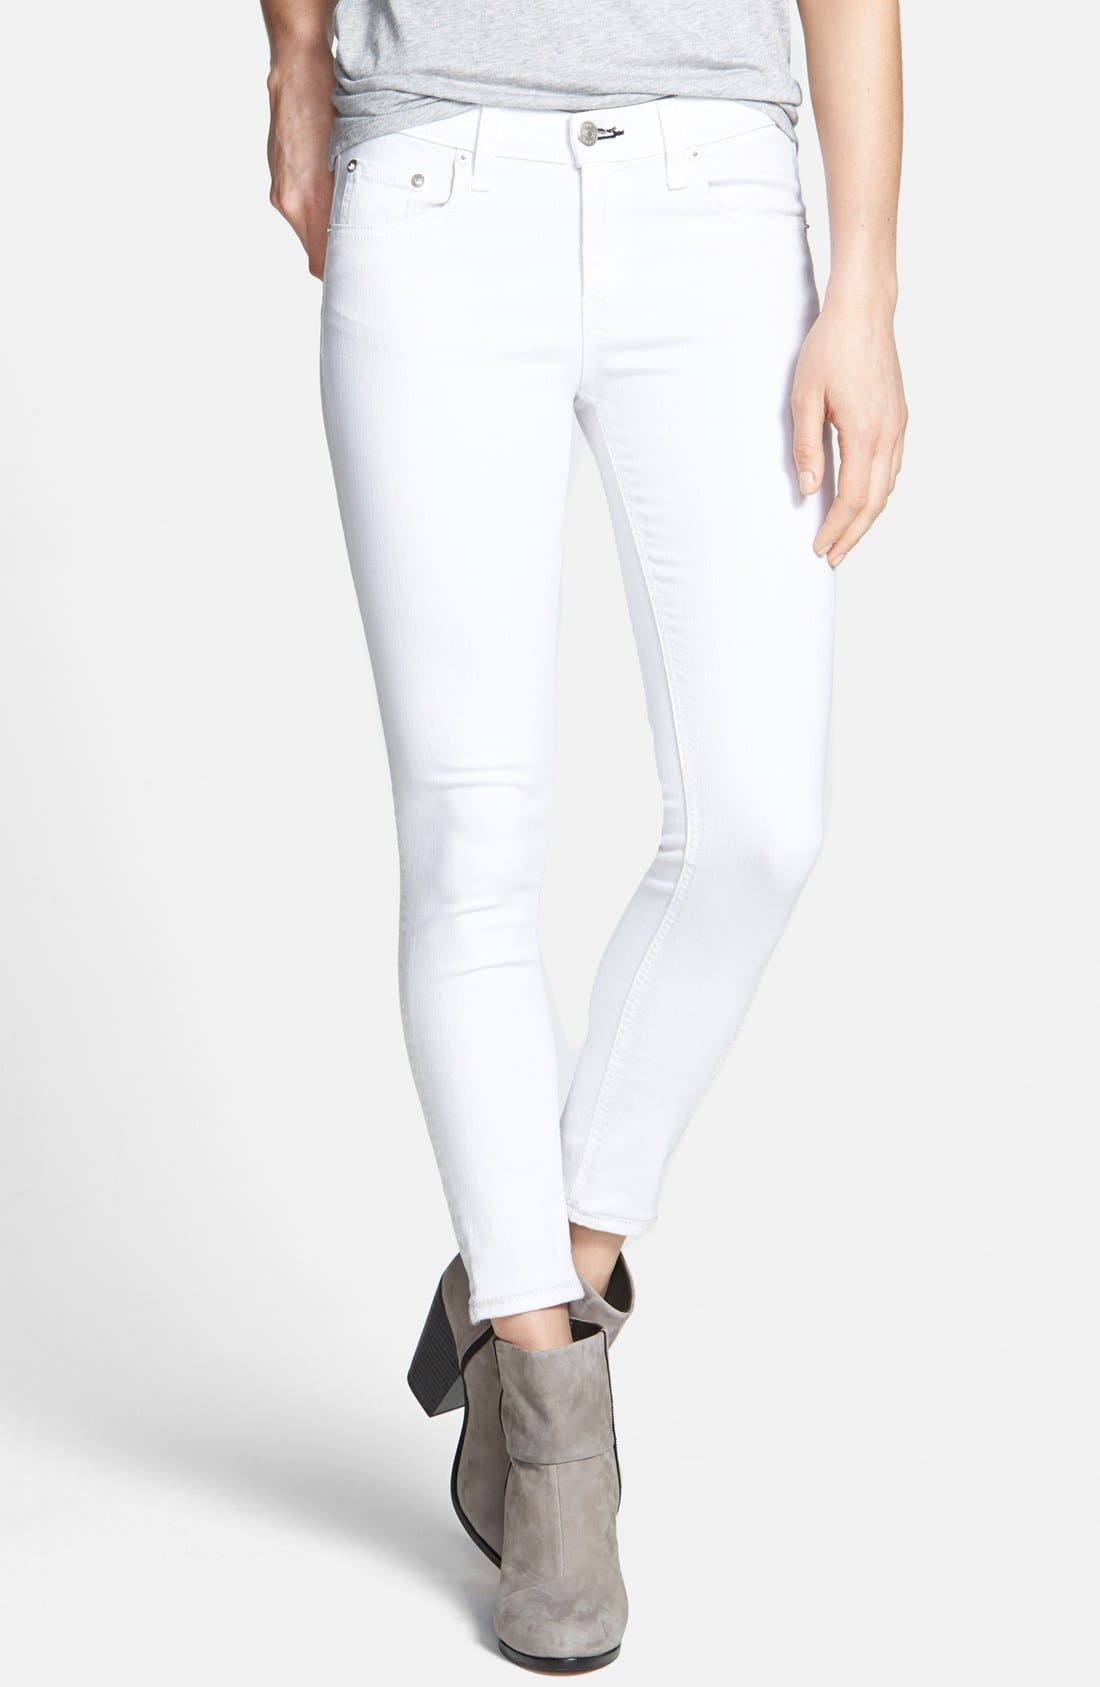 Main Image - rag & bone/JEAN 'The Skinny' Crop Jeans (Bright White)